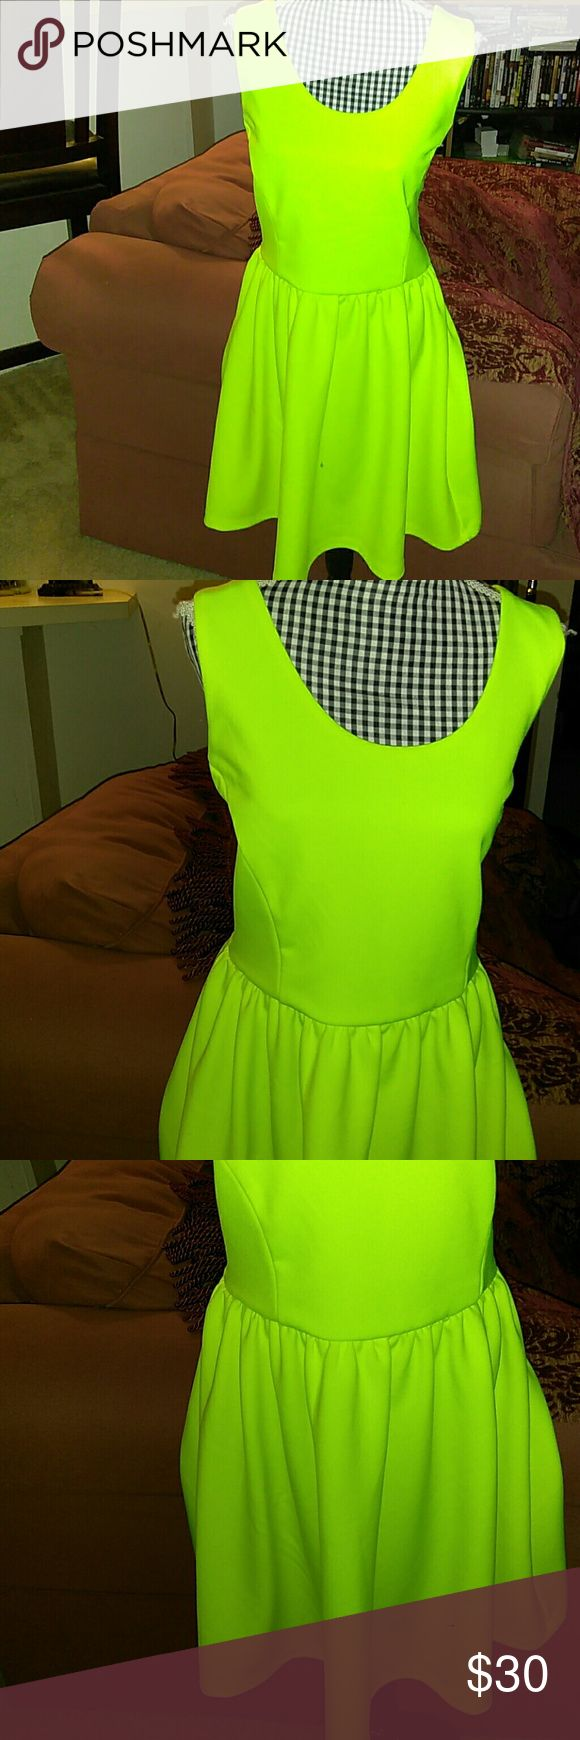 """L'Amour Nanette Lapore Neon Yellow Sleeveless Excellent condition L'Amour Nanette Lapore Neon Yellow Sleeveless Dress. Length: 34"""", armpit to armpit: 17"""" waist: 28"""". Material: 93% polyester, 7% spandex. Lining: 100% polyester. L'amour Nanette lapore Dresses"""